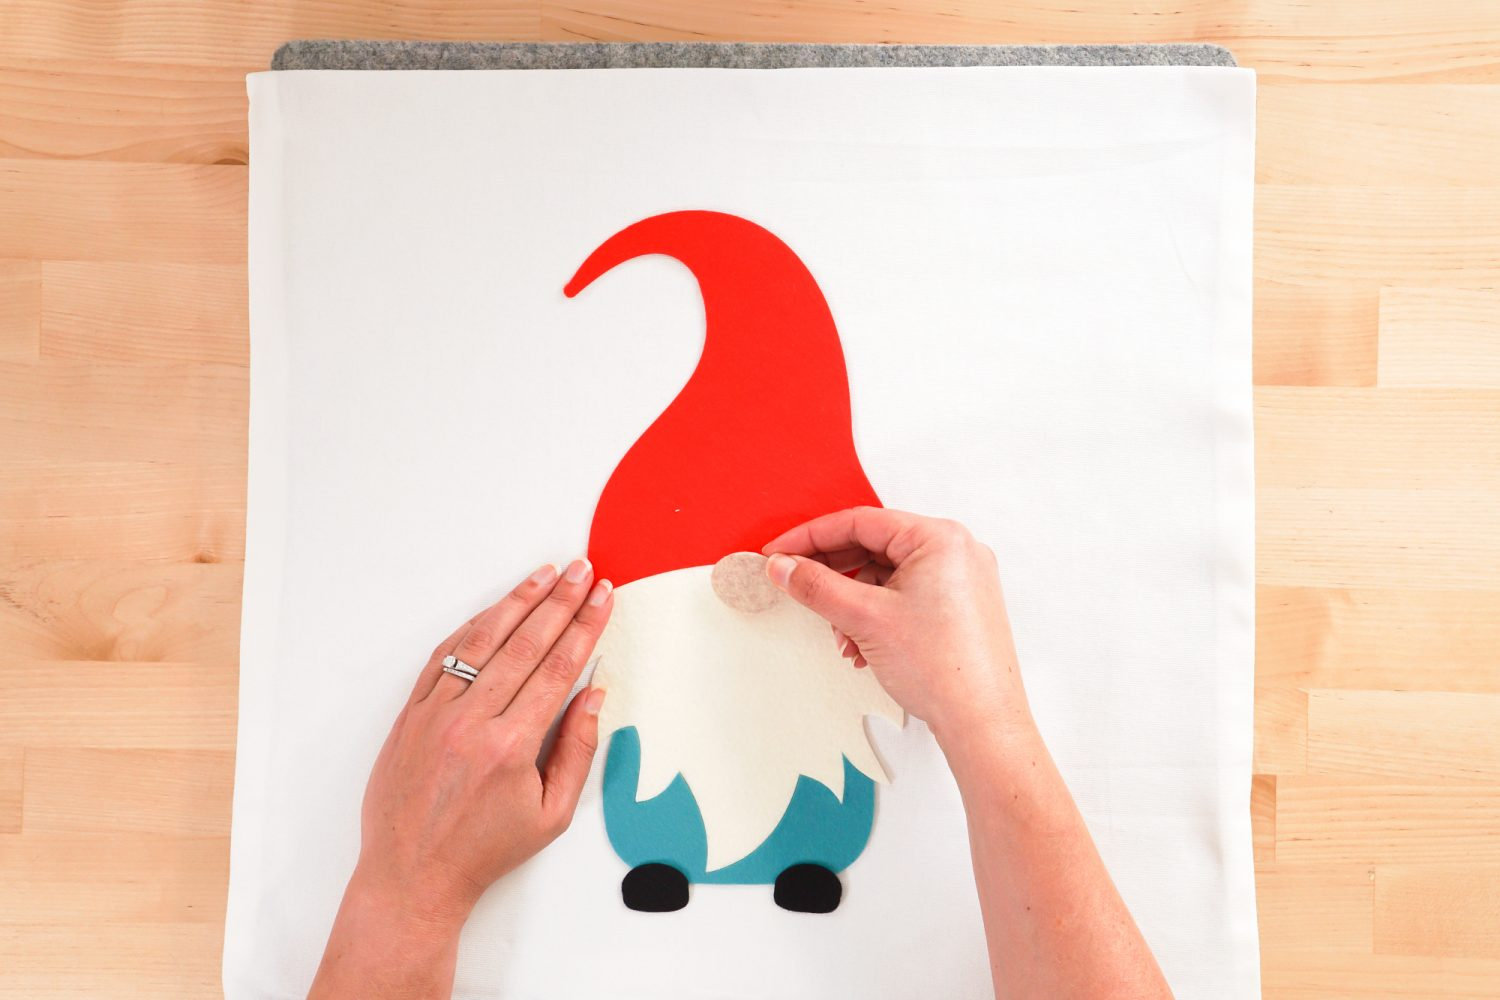 Hands placing all of the gnome pieces on the pillow.